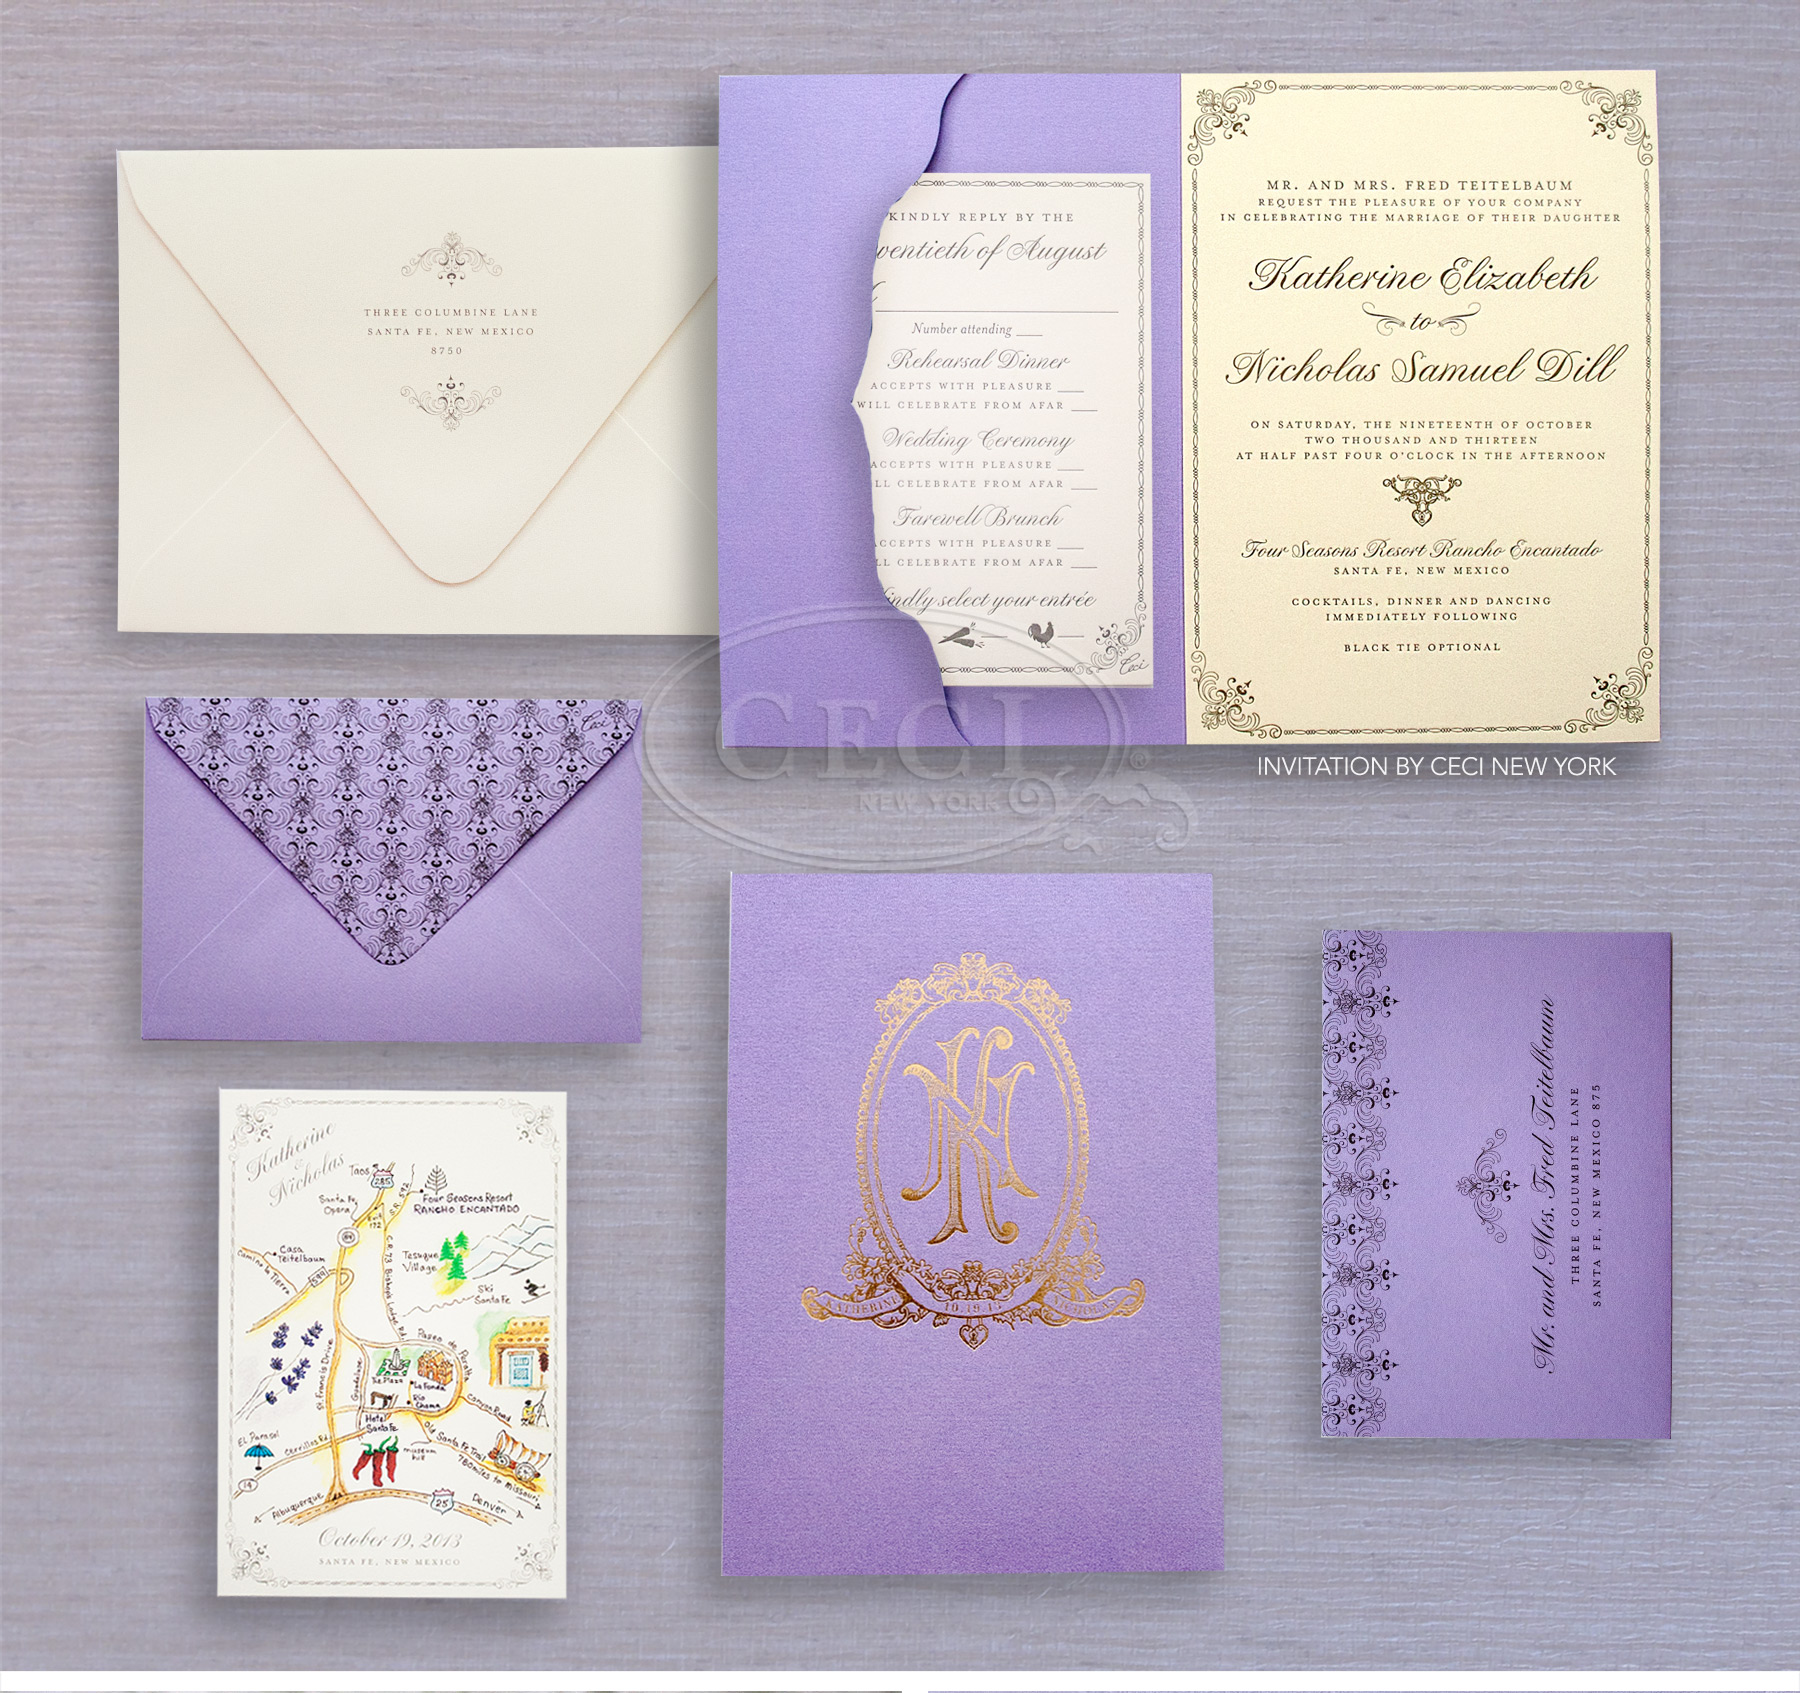 Luxury Wedding Invitations by Ceci New York - Our Muse - Couture Culture - Be inspired by Katie and Nick's cultural wedding - custom wedding invitations, luxury wedding invitations, couture, ceci new york, santa fe, new mexico